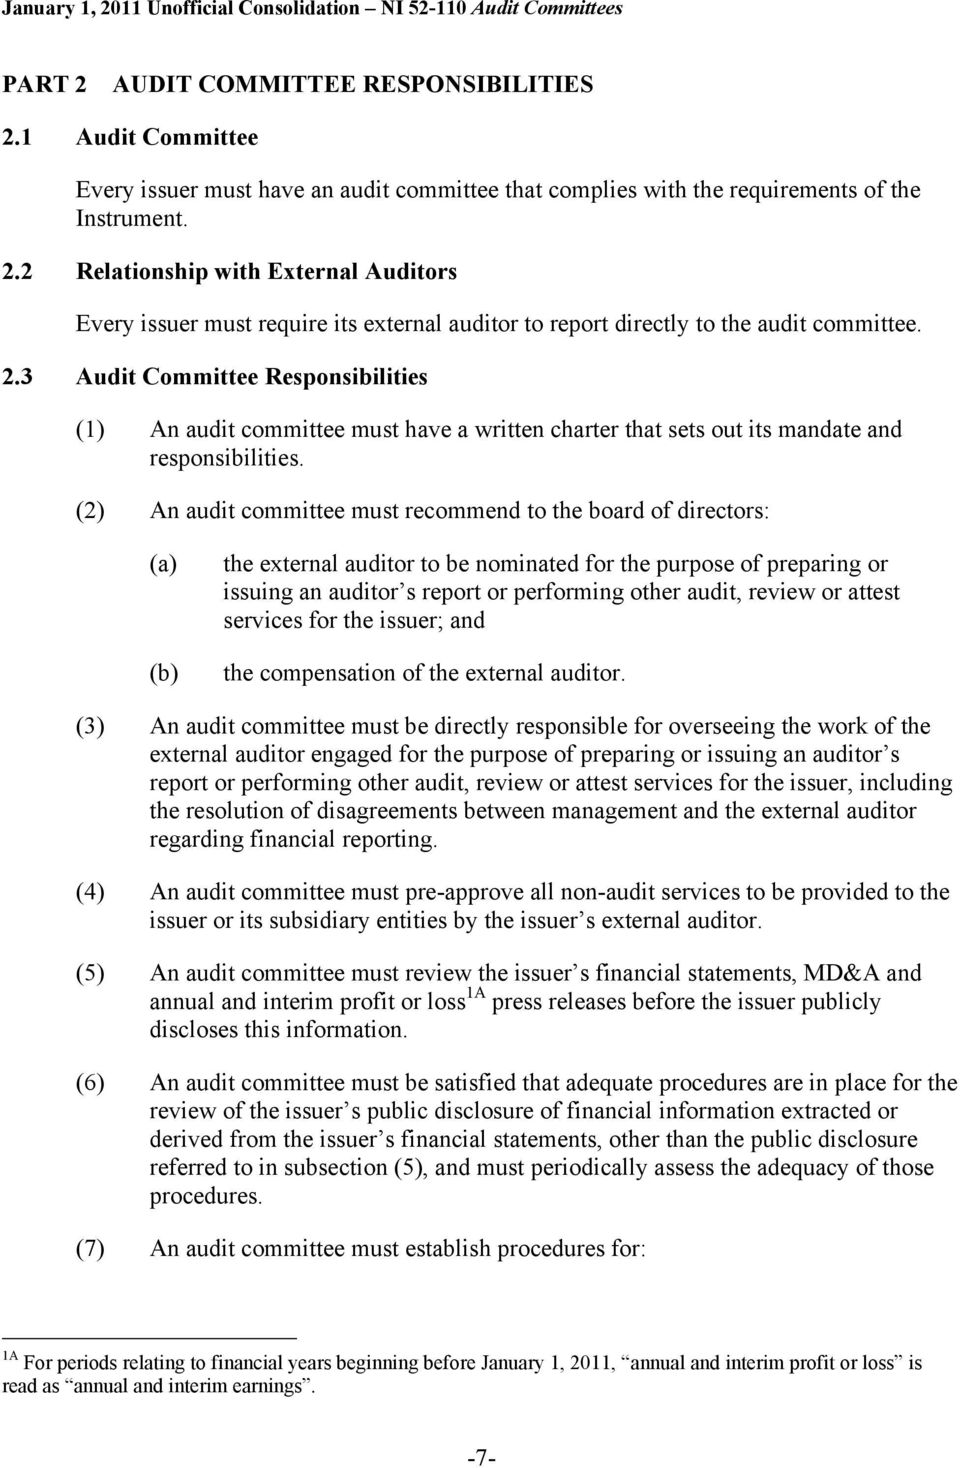 (2) An audit committee must recommend to the board of directors: the external auditor to be nominated for the purpose of preparing or issuing an auditor s report or performing other audit, review or